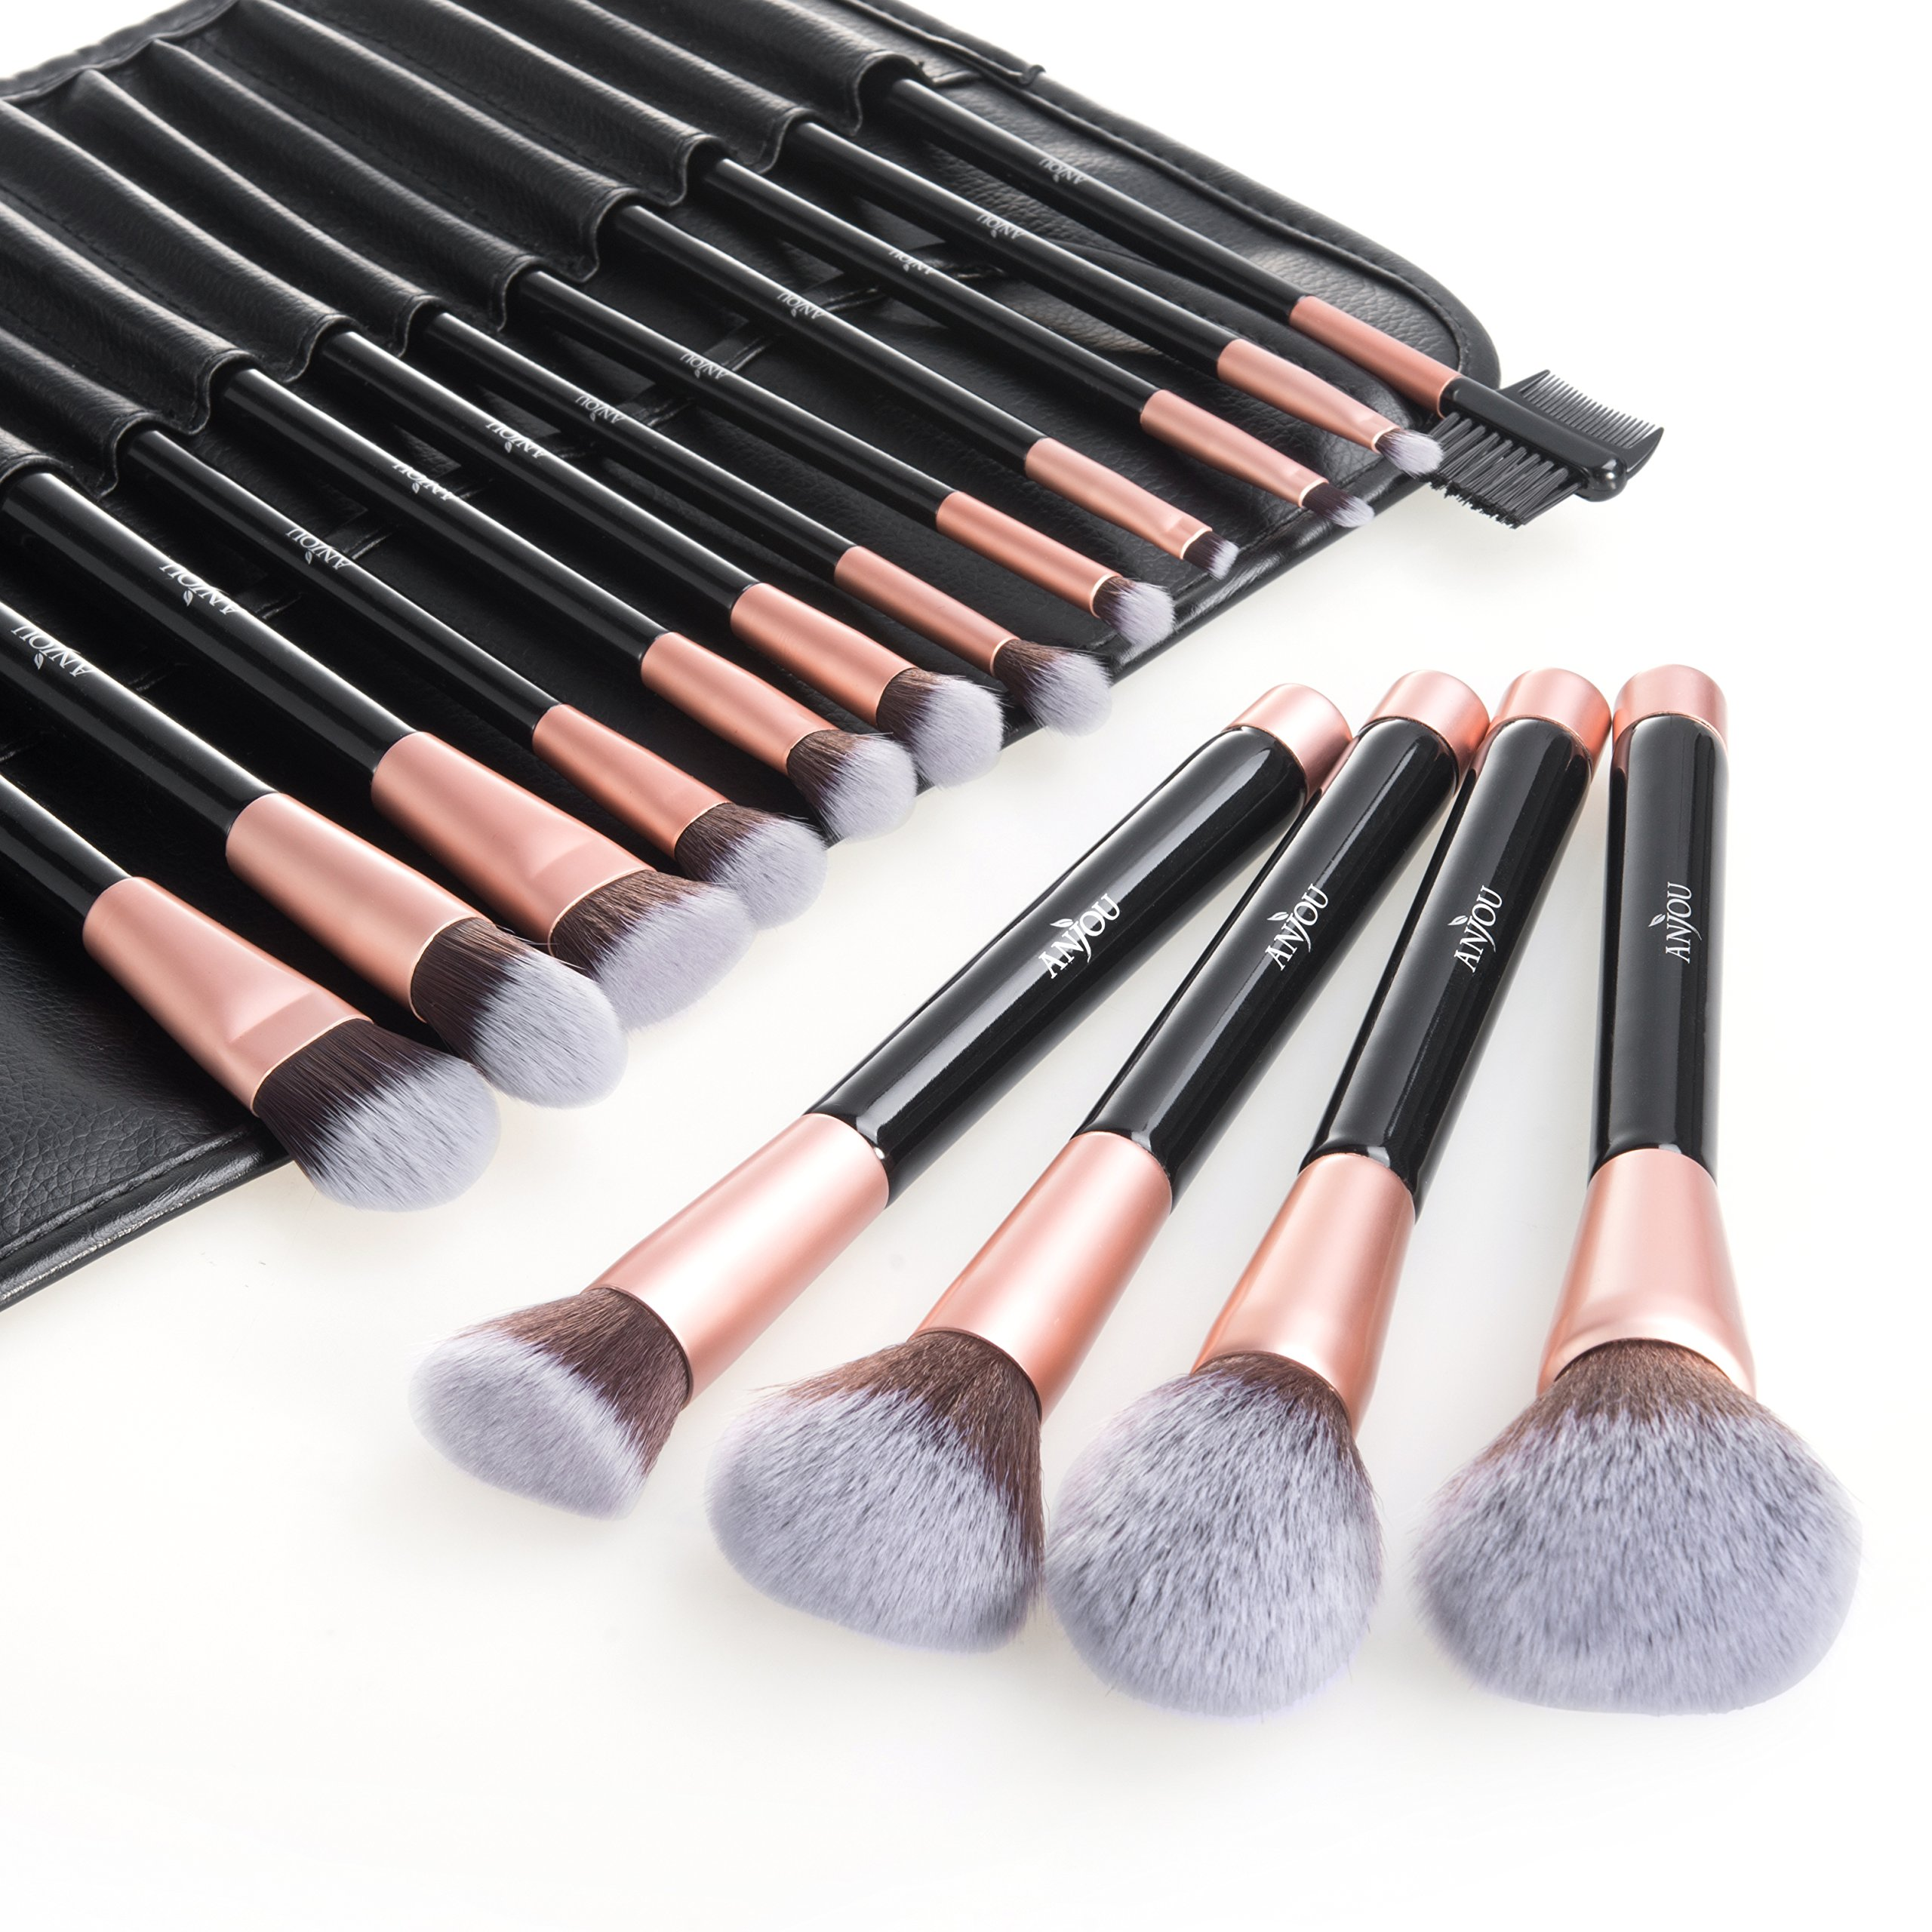 Anjou Makeup Brush Set, 16pcs Premium Cosmetic Brushes for Foundation Blending Blush Concealer Eye Shadow, Cruelty-Free Synthetic Fiber Bristles, PU Leather Roll Clutch Included, Rose Golden